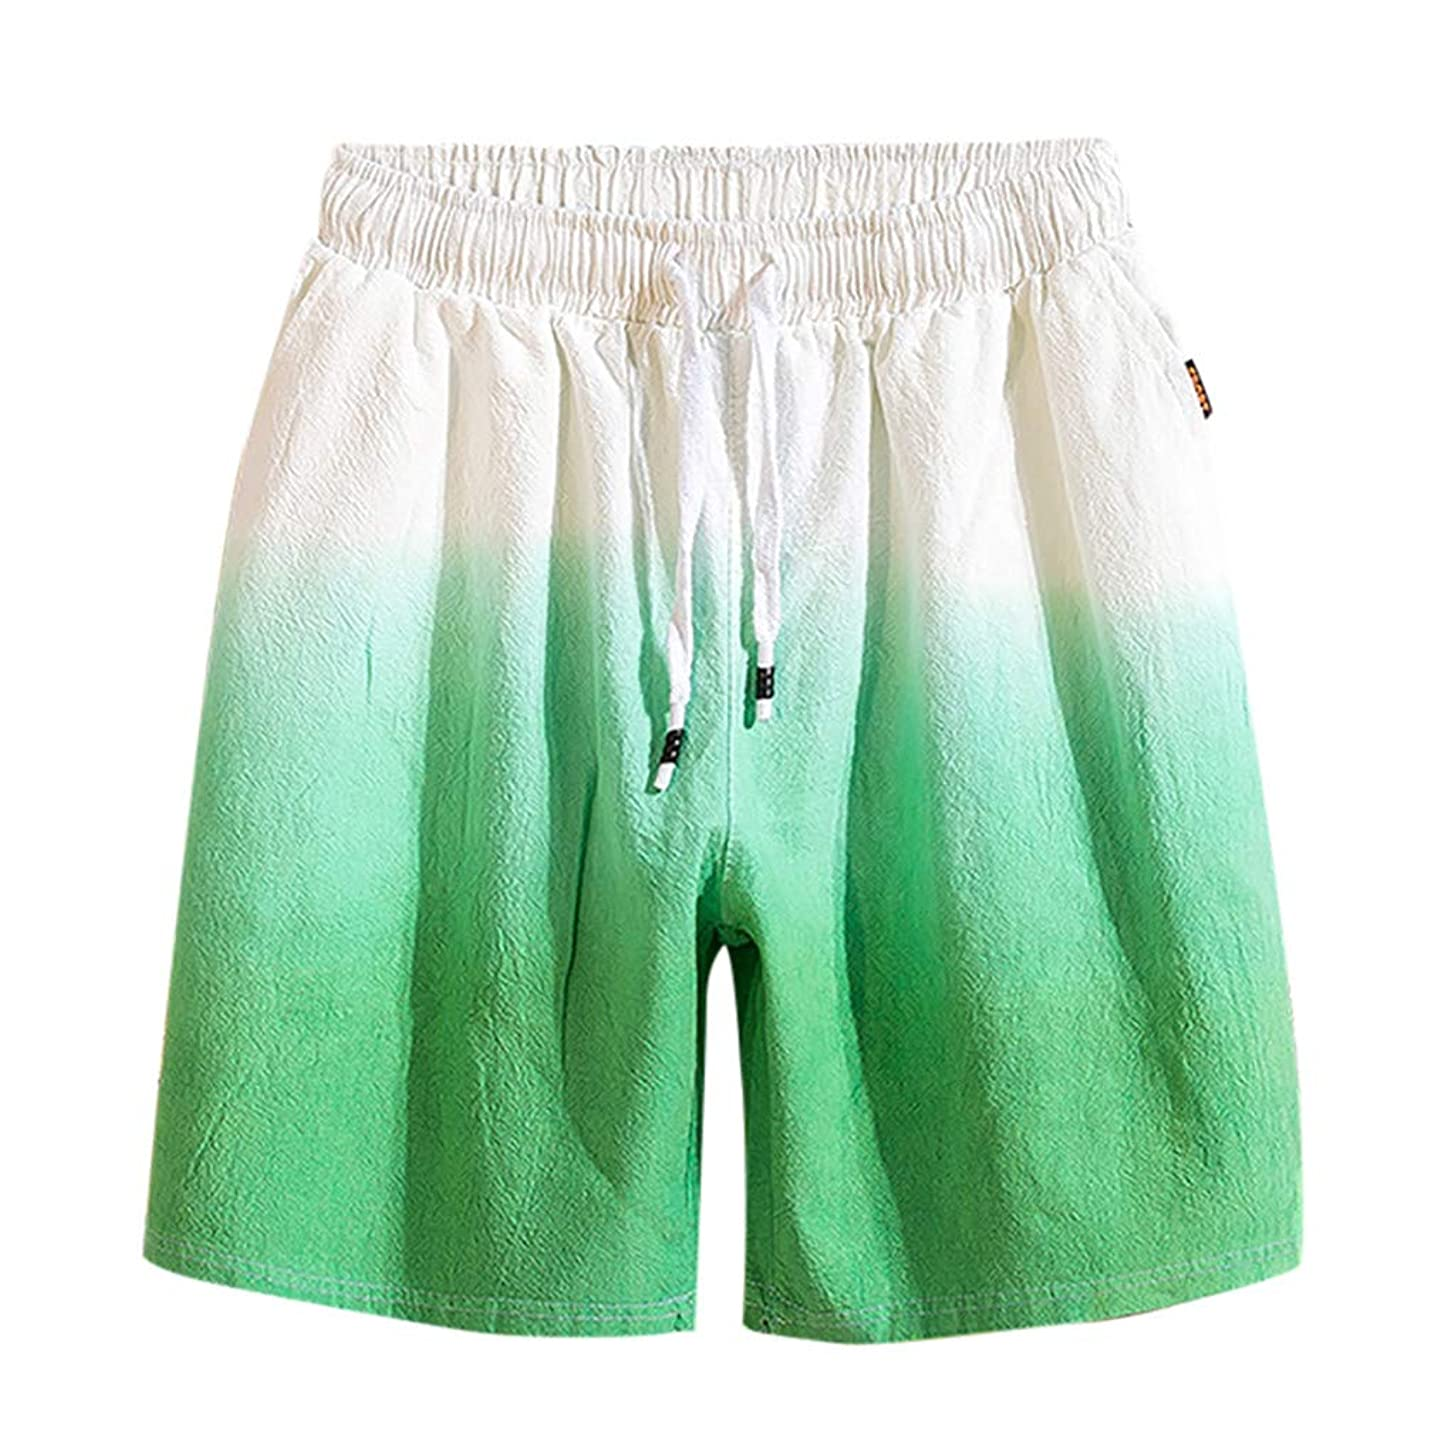 LUCAMORE Men's Gradient Cotton Linen Shorts Elastic Waist Drawstring Outdoor Training Running Shorts